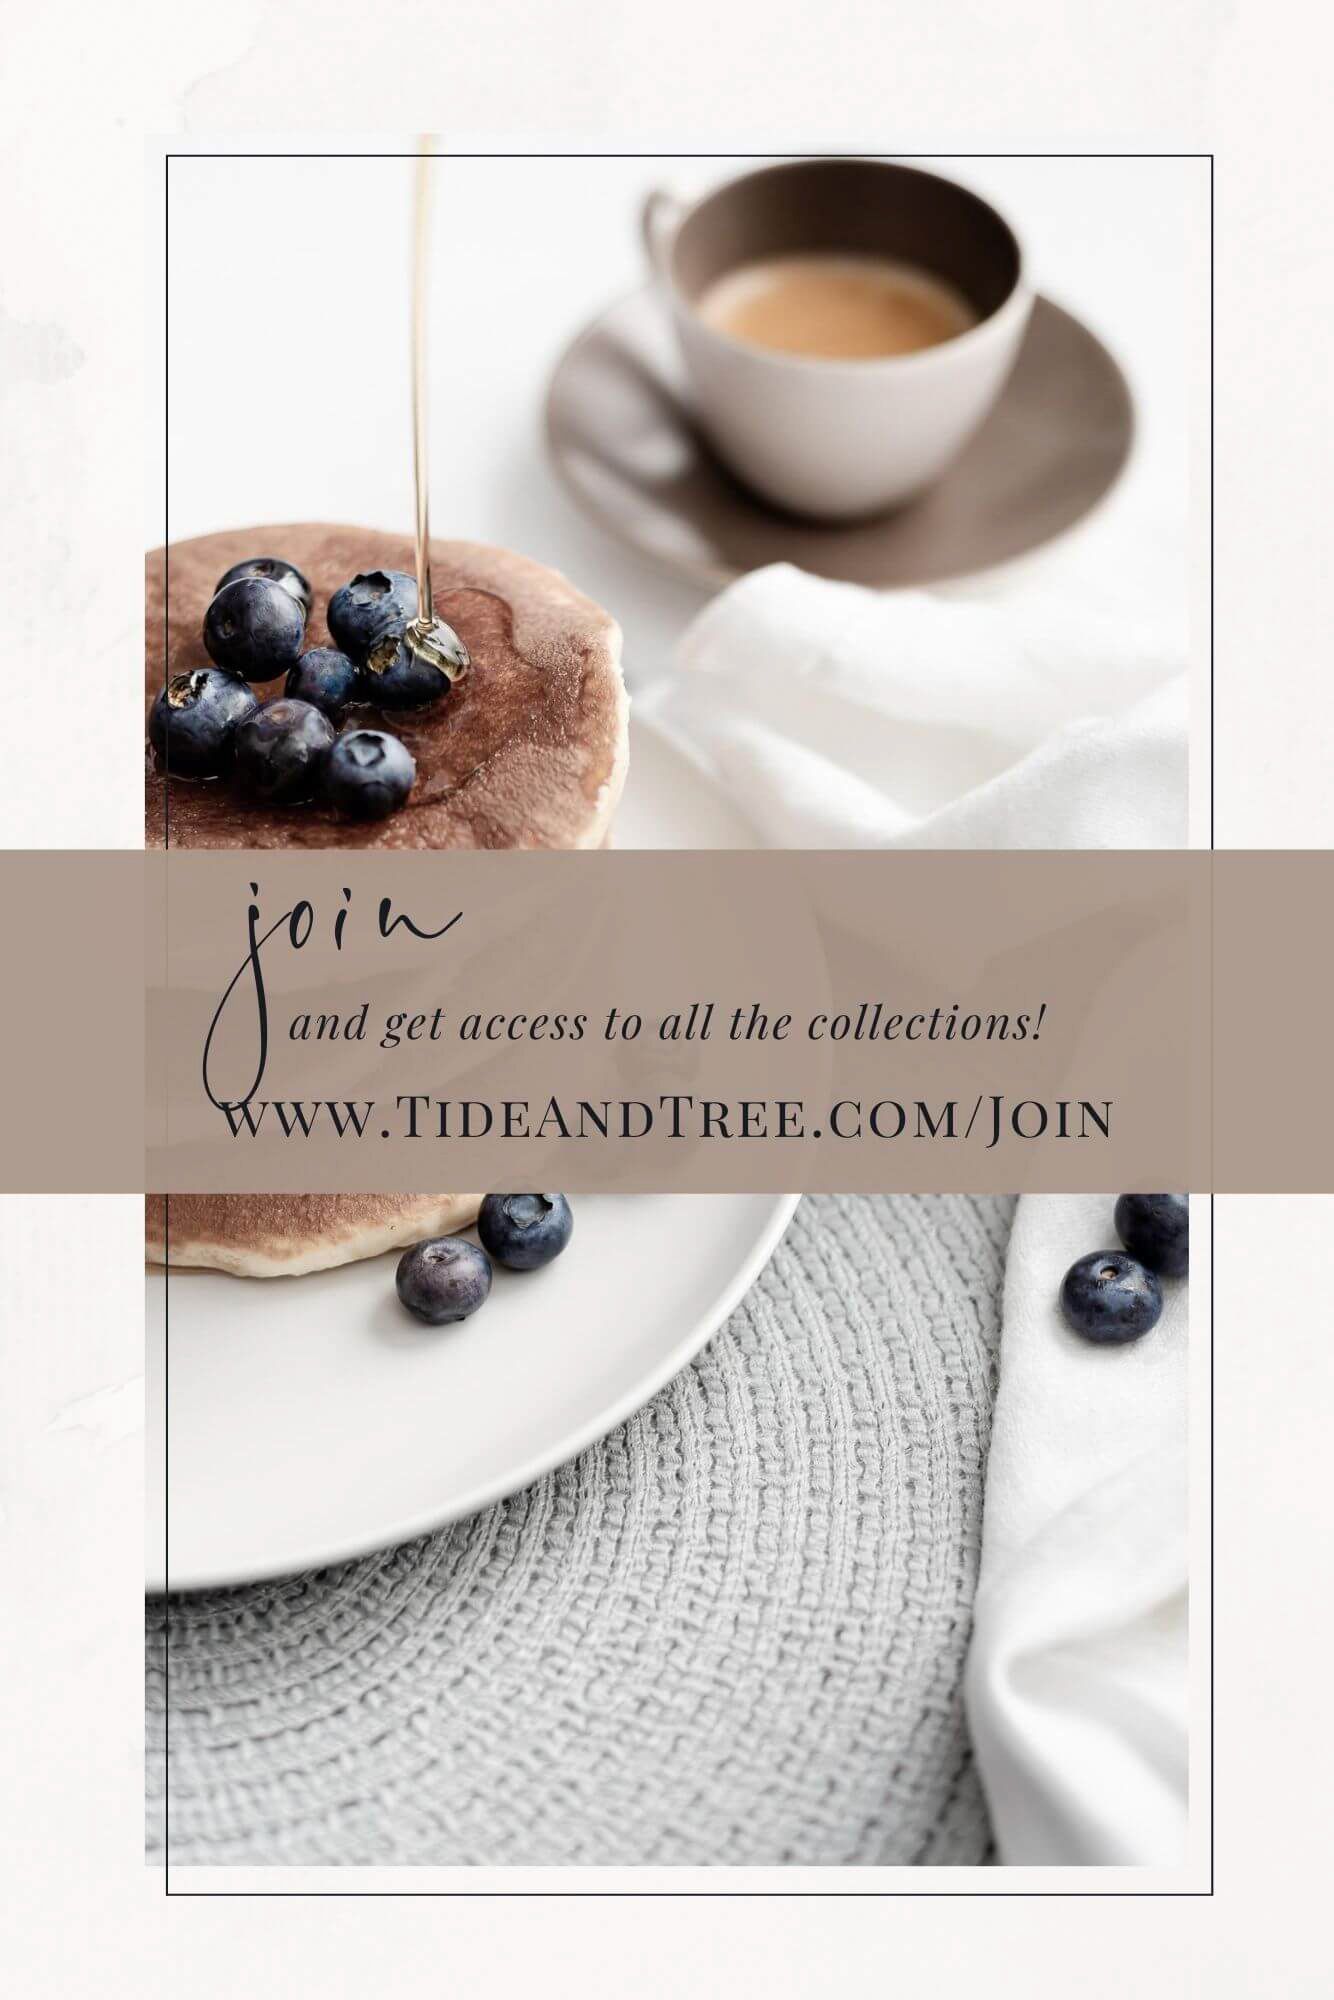 Join now to access all the collections